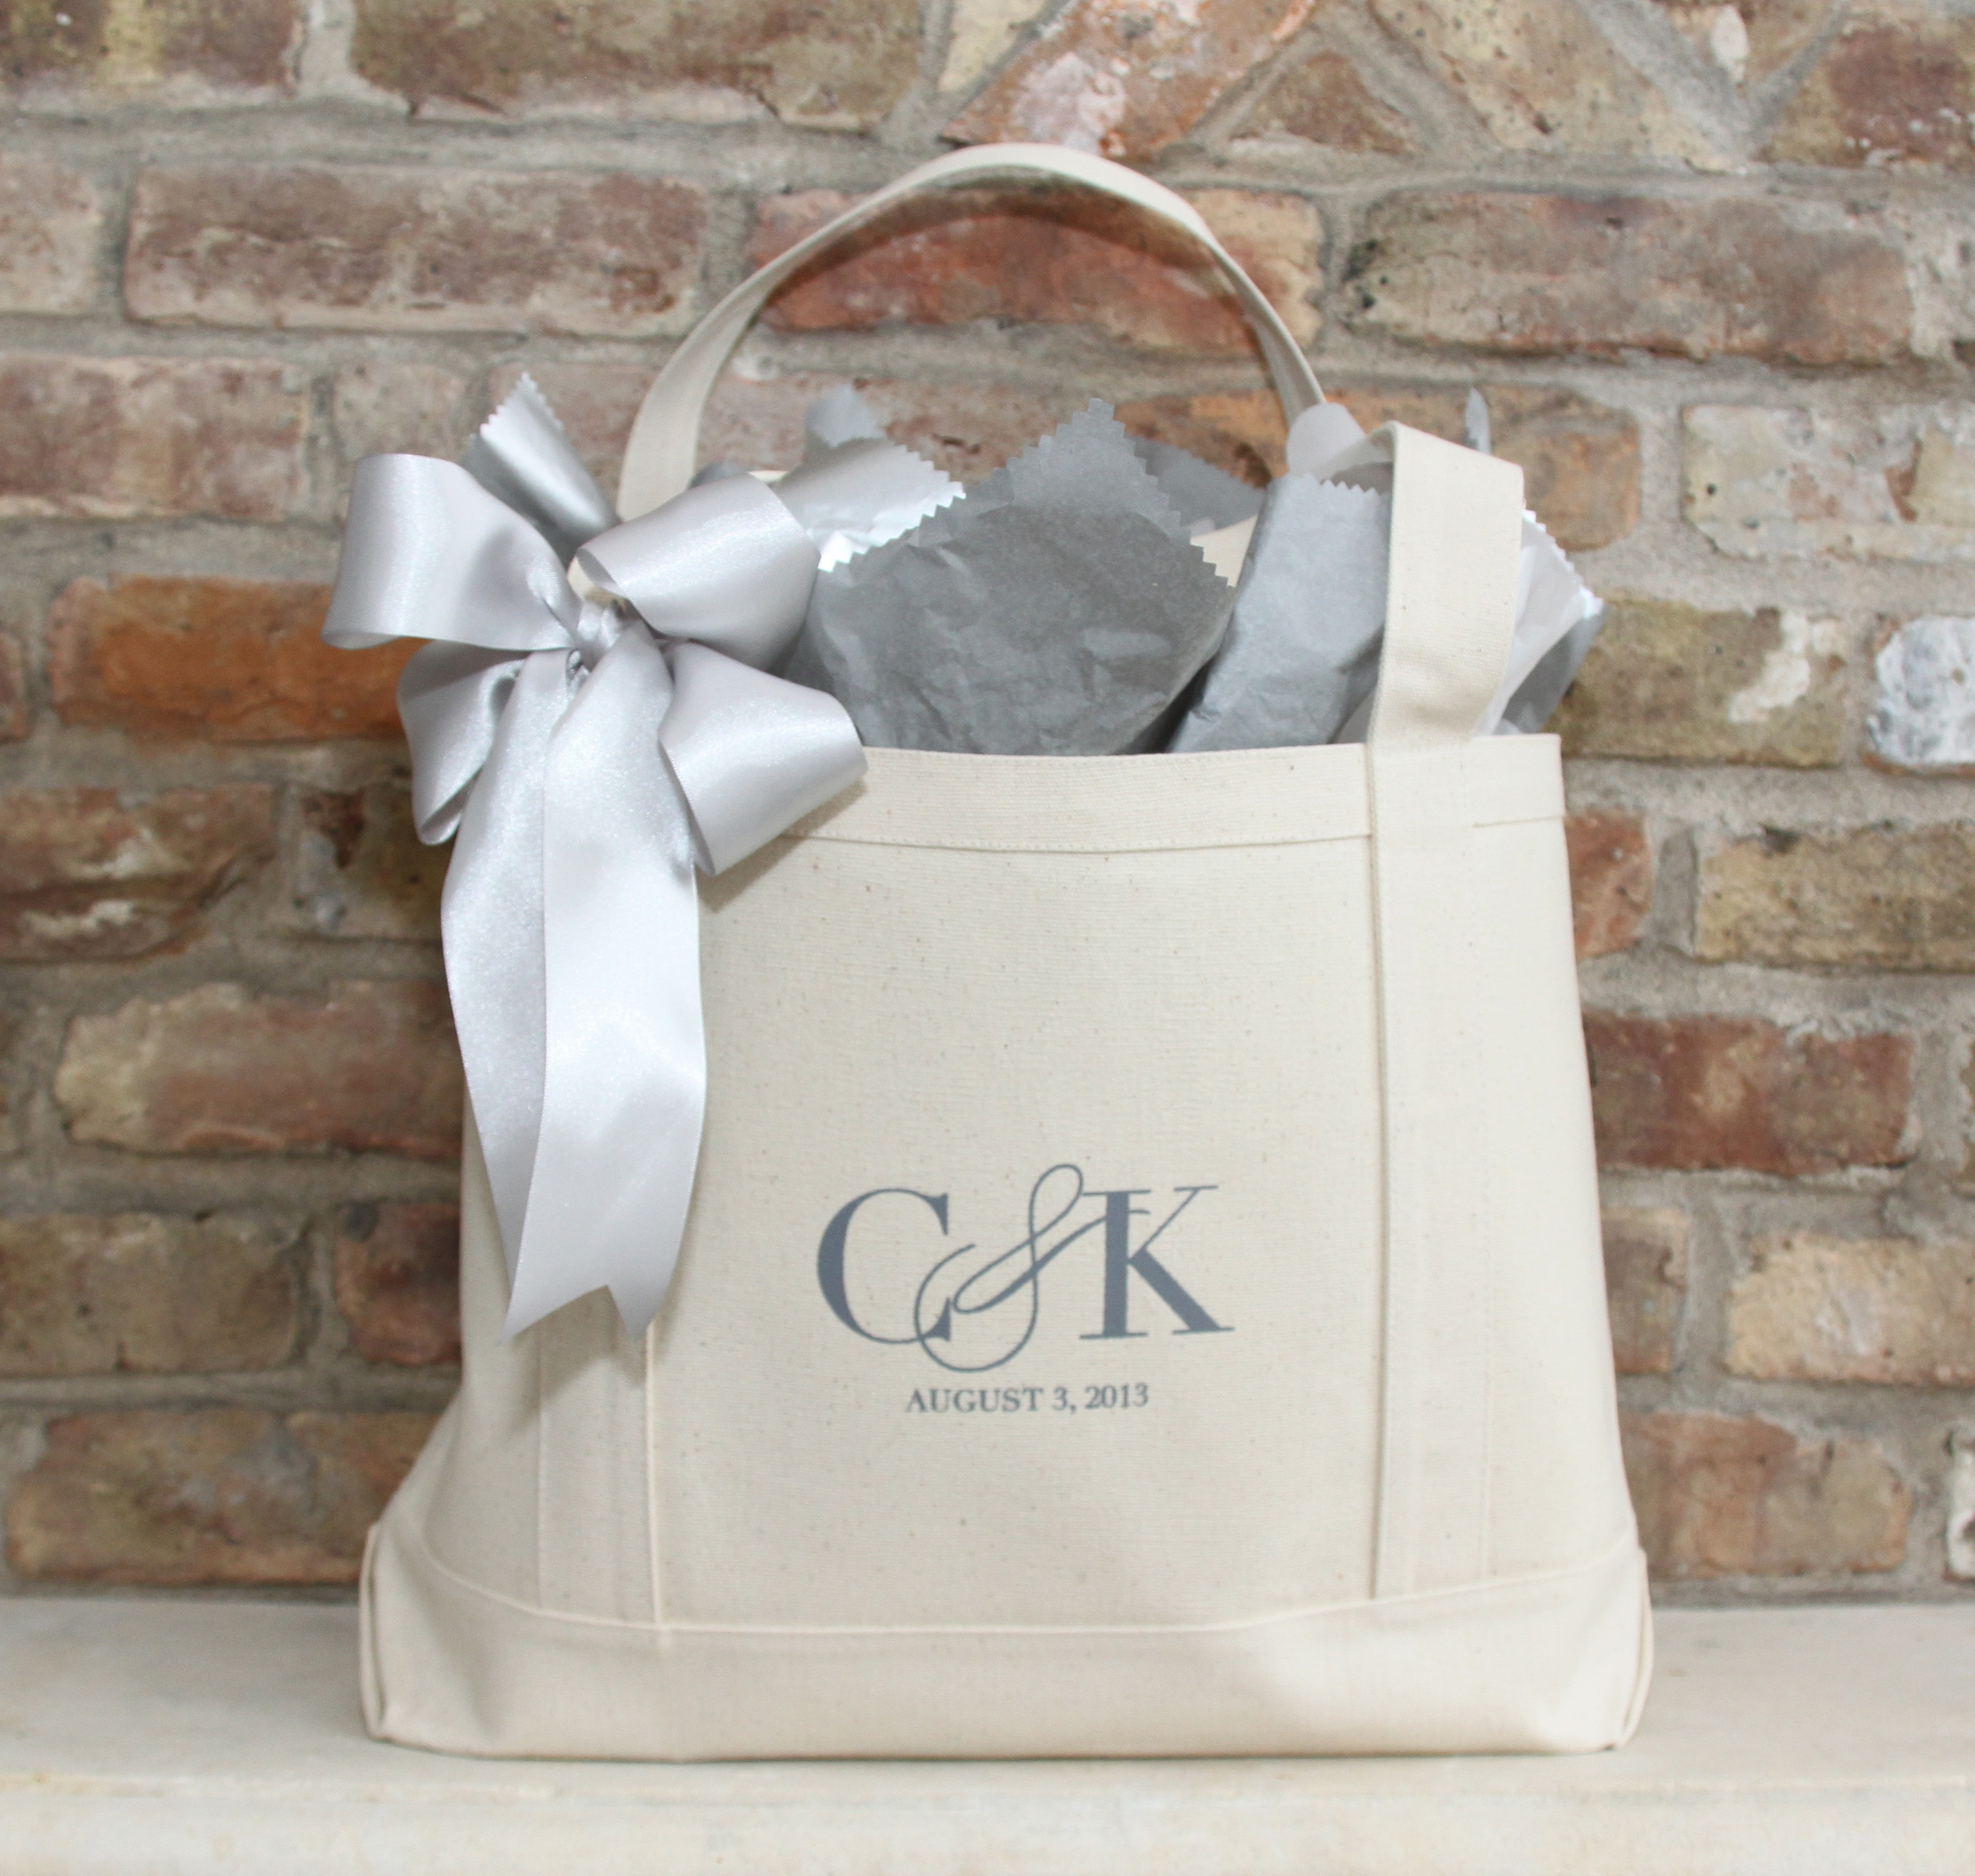 Wedding Gift Bag Suggestions : Bridal Shower Gift Idea // Custom Tote Bags